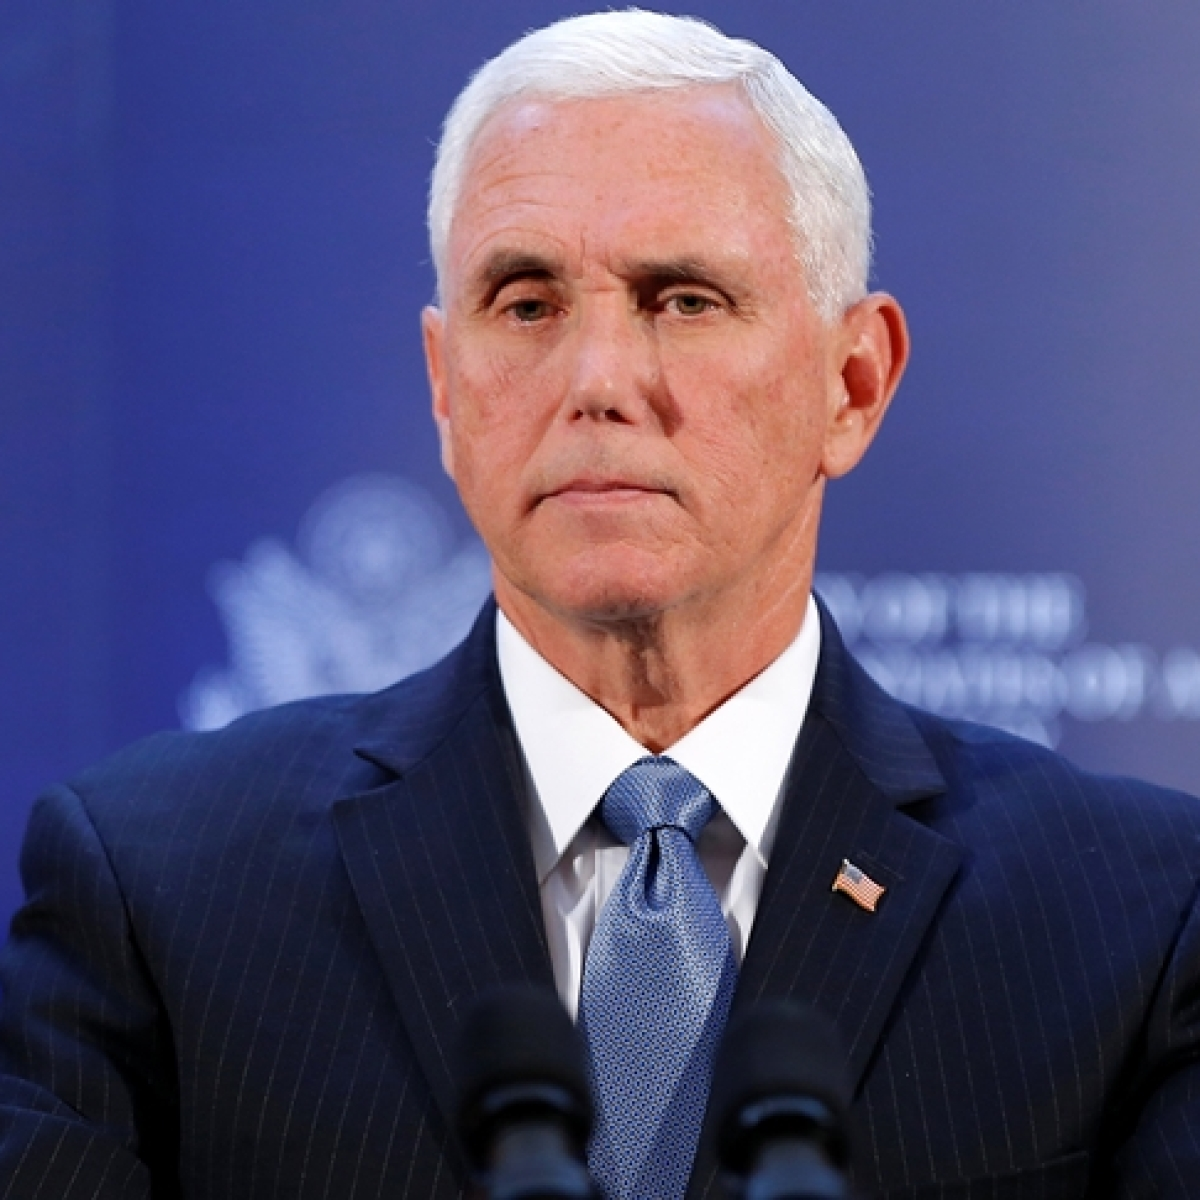 US VP Mike Pence deletes tweet with picture of Trump's campaign staff not wearing masks, flouting social distancing norms